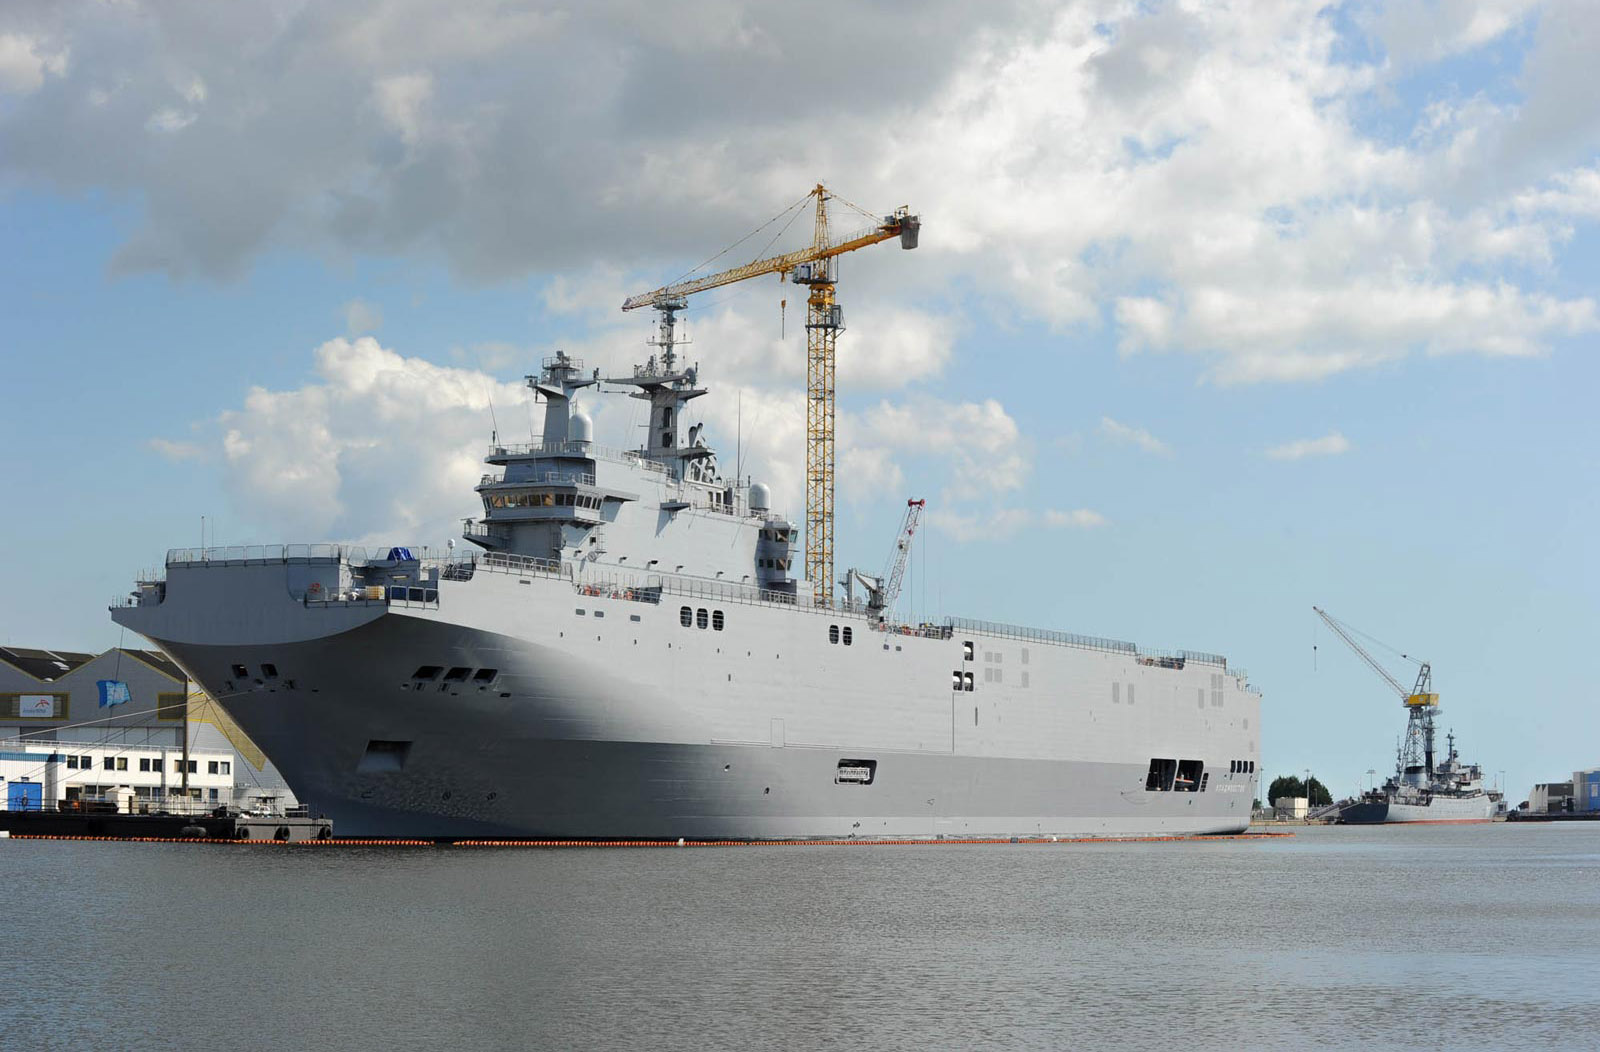 http://webdoc.france24.com/mistral-france-russia-warships-saint-nazaire/img/mehdi/Diapo_Mistral_HR_04.jpg